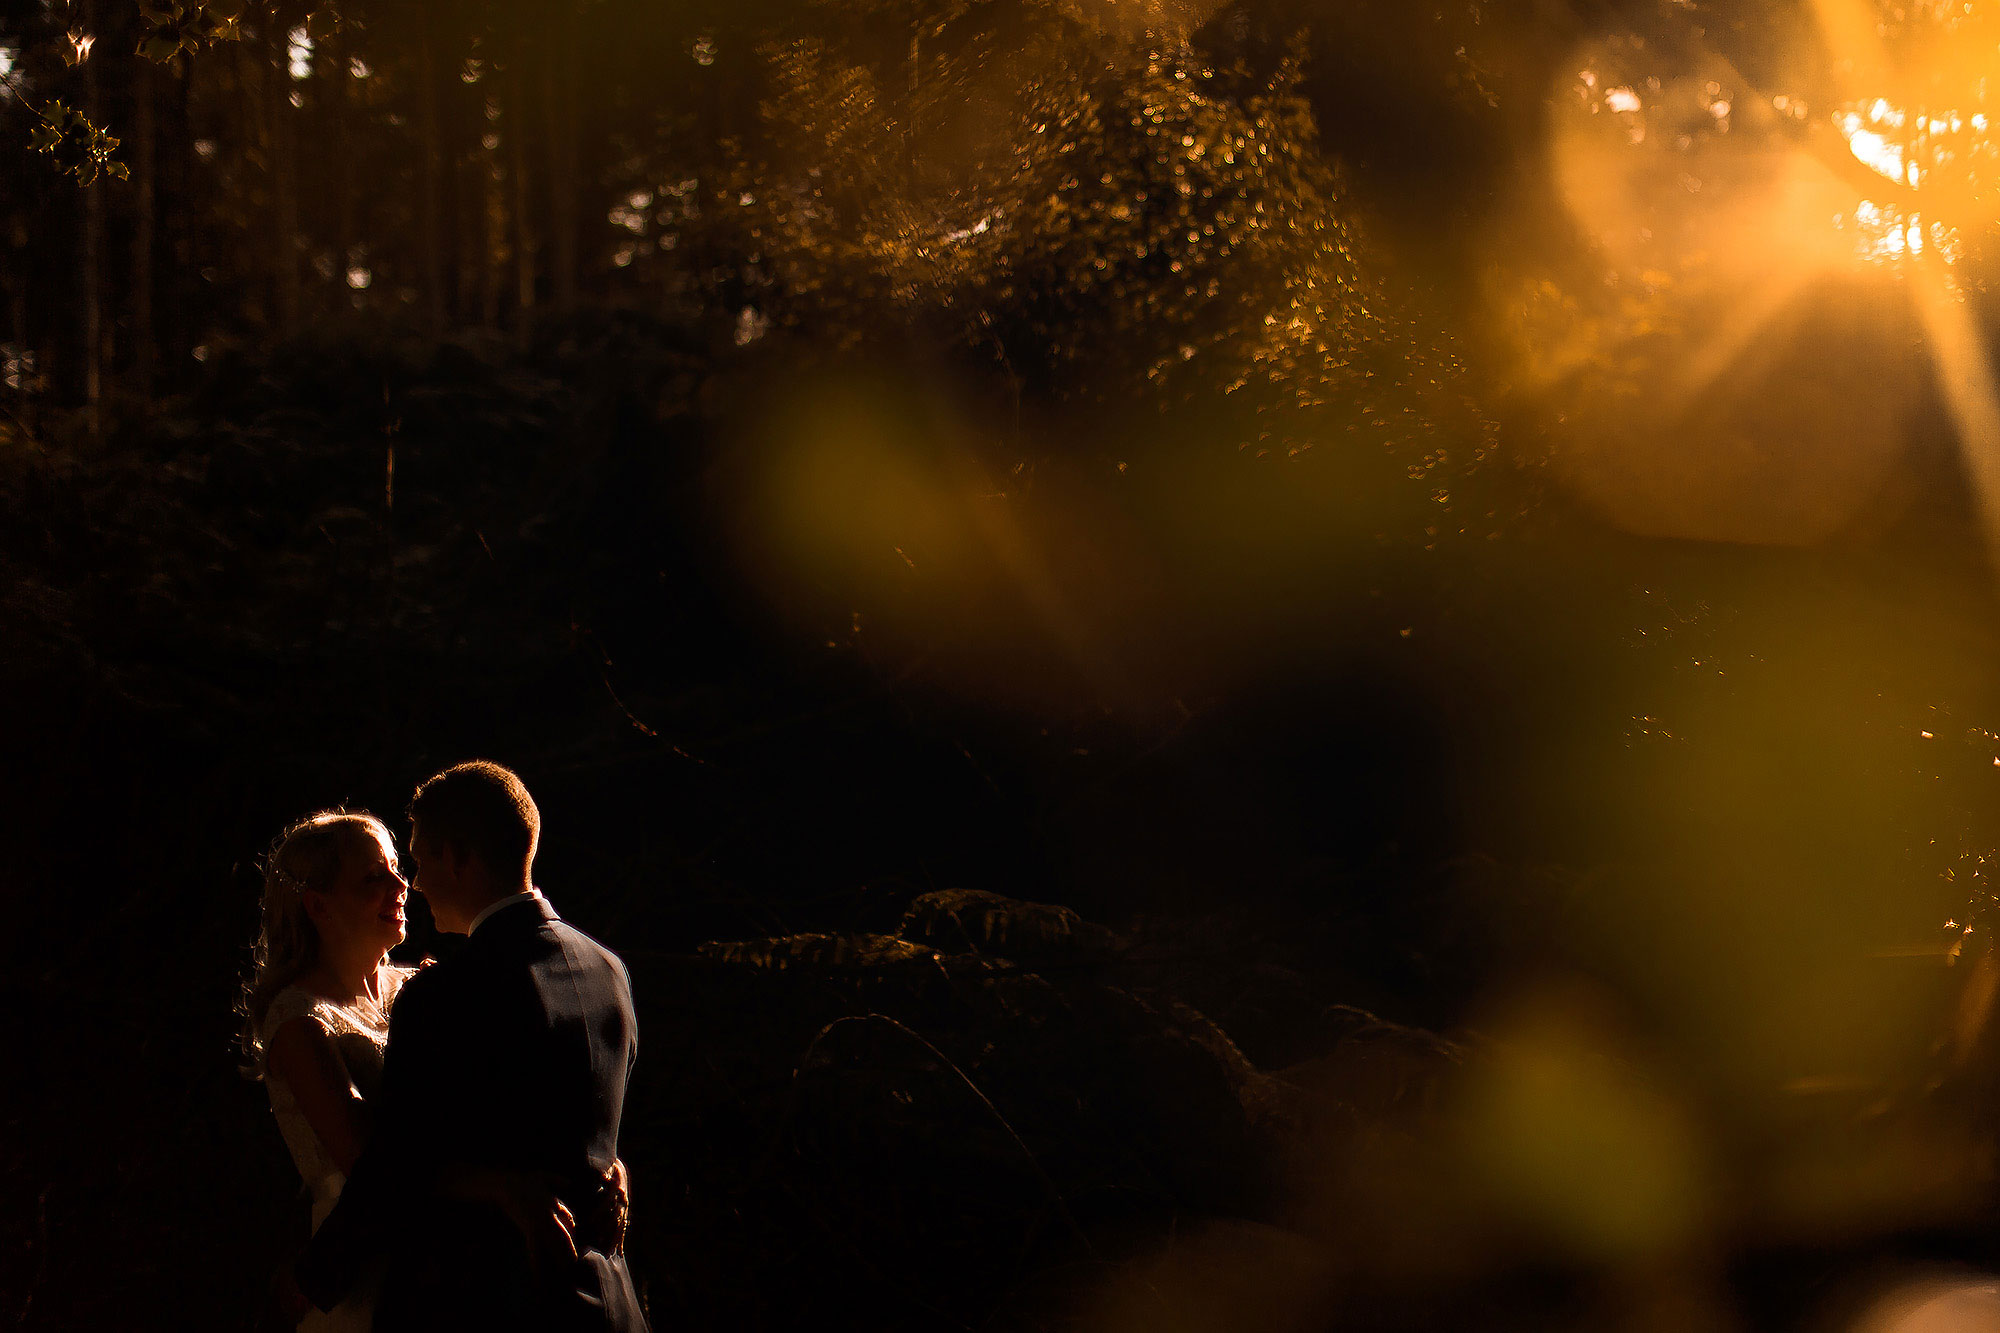 Bride and groom facing each other with sun flare during golden hour in the forest | Peckforton Castle Wedding by Toni Darcy Photography